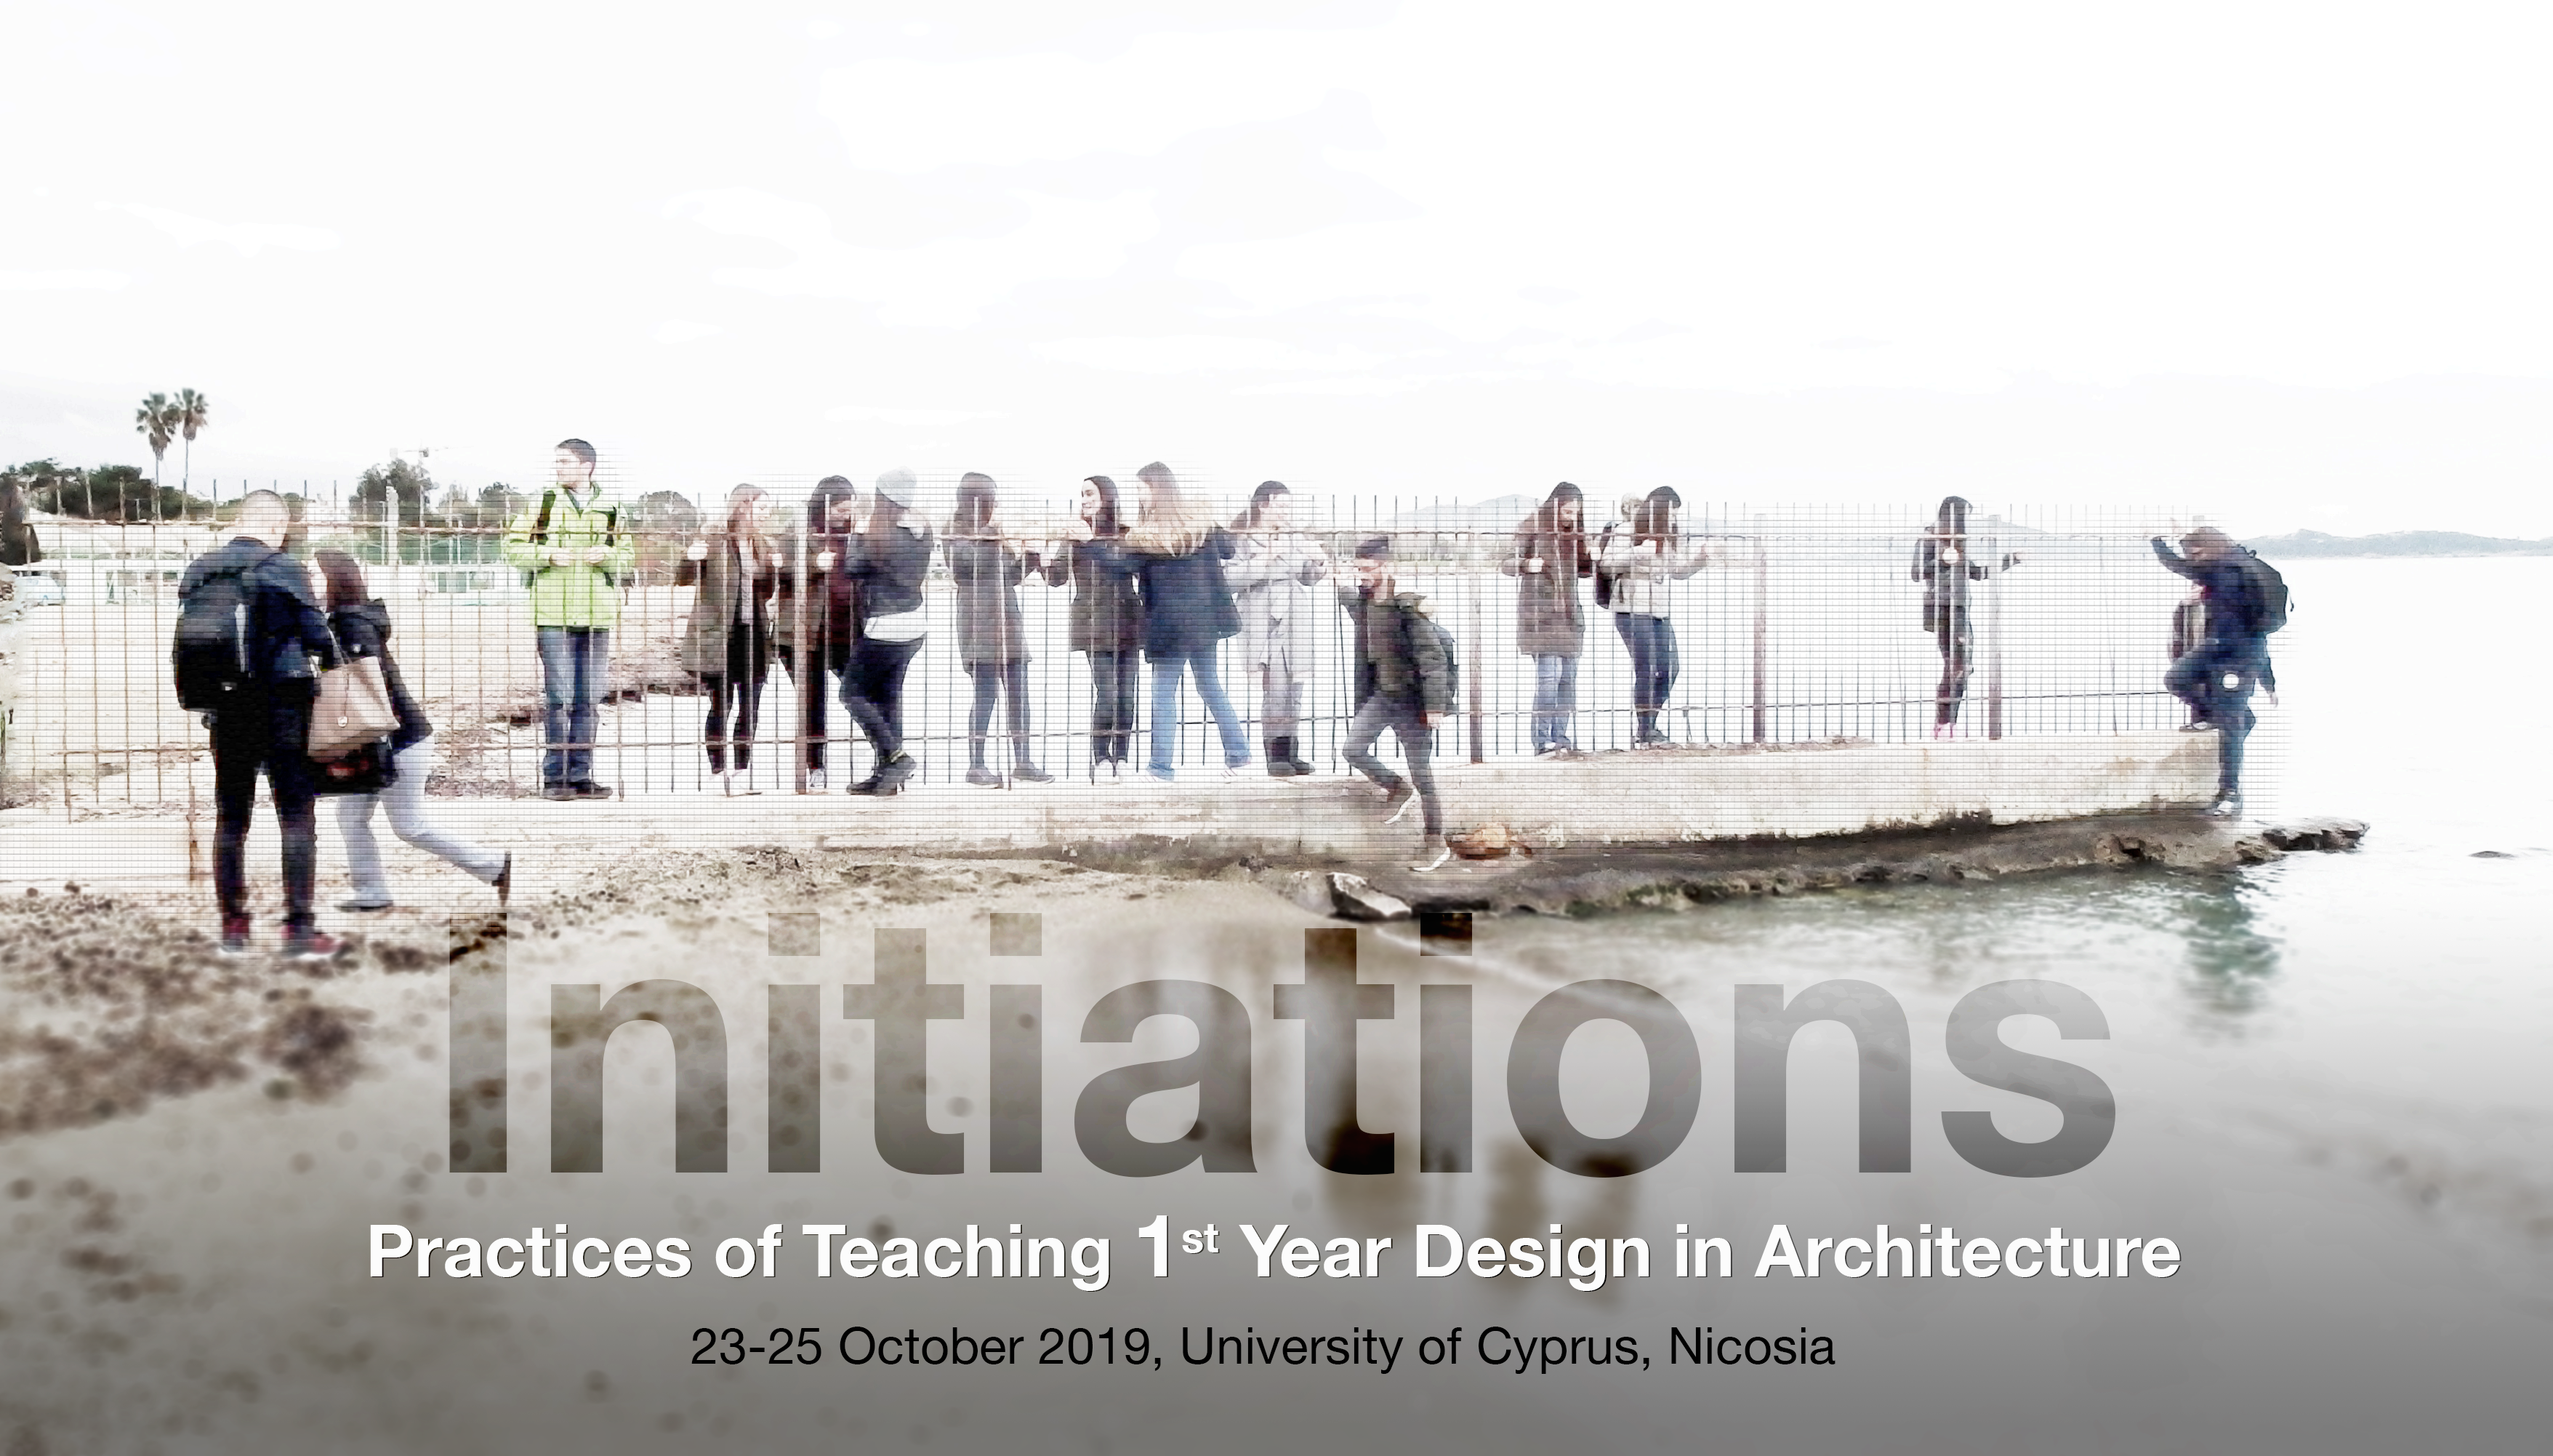 CONFERENCE 'Initiations: Practices of Teaching 1st Year Design in